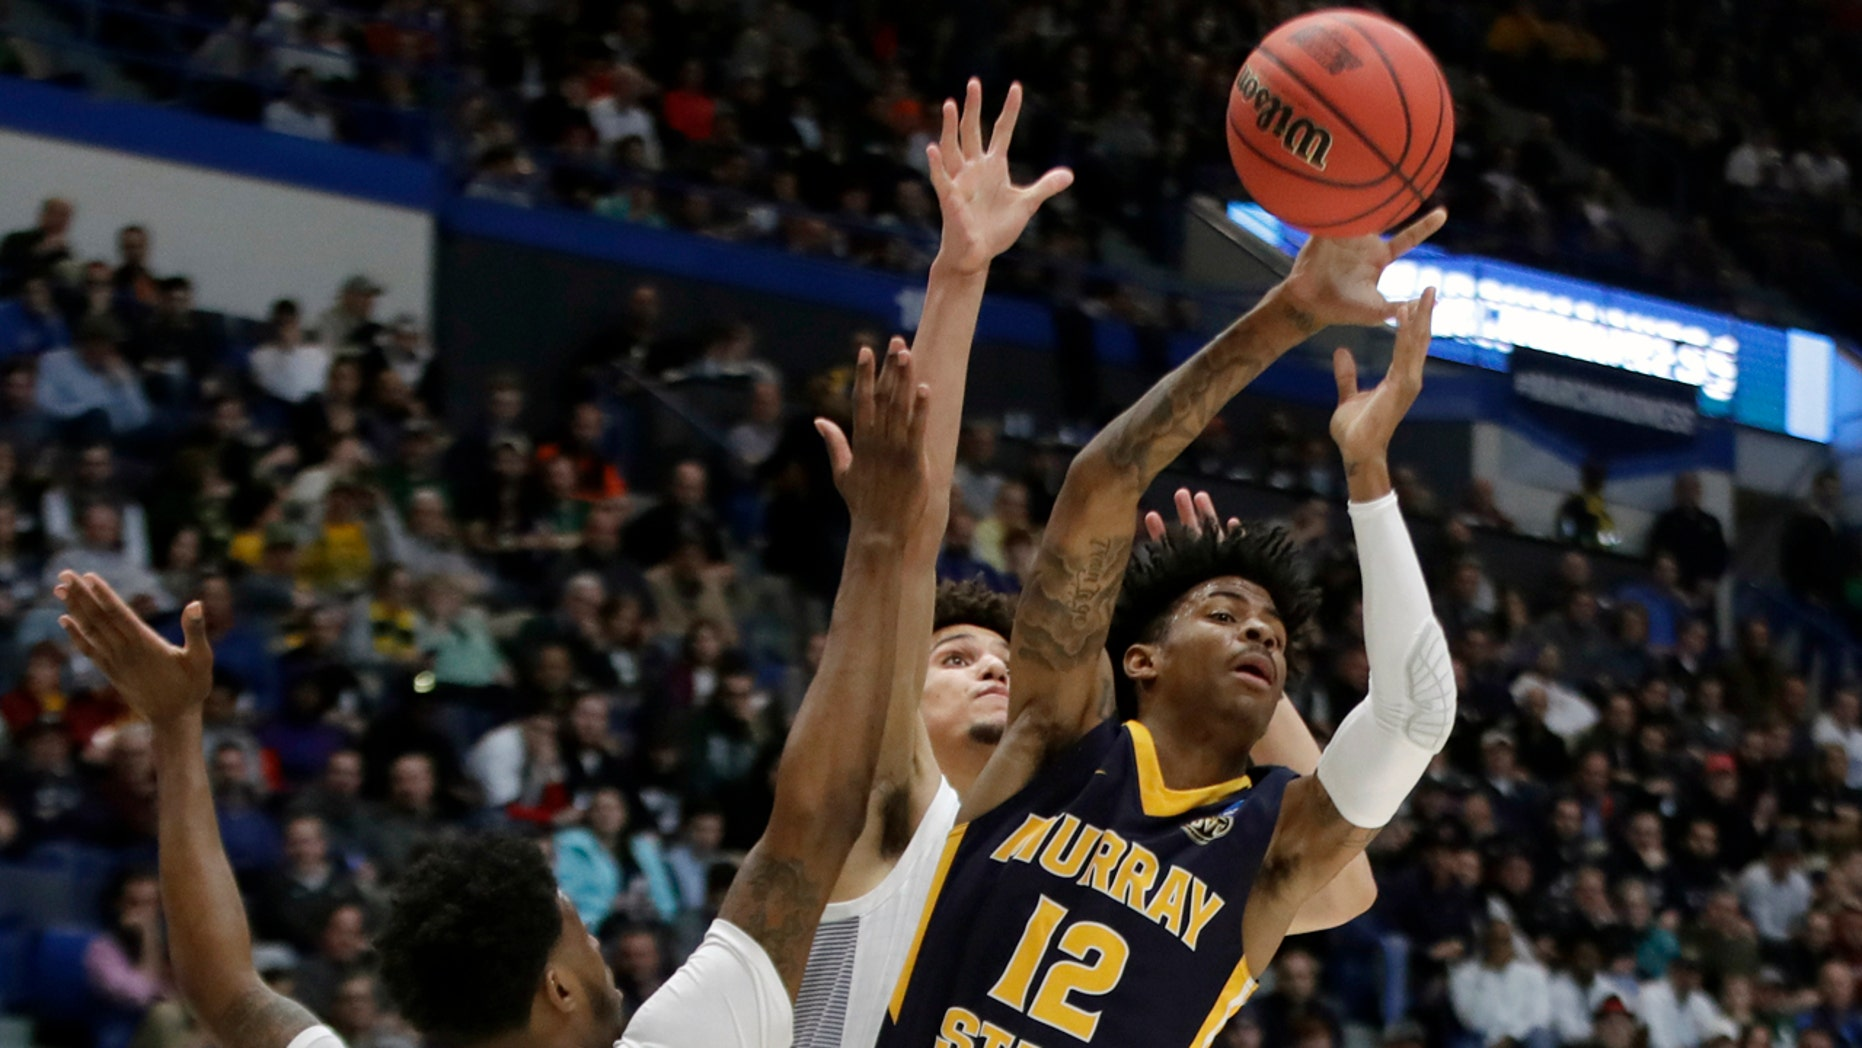 Murray State's Ja Morant (12) passes the ball under pressure from Marquette's Sacar Anim and Brendan Bailey, behind, during the first half of Thursday's game. (AP Photo/Elise Amendola)